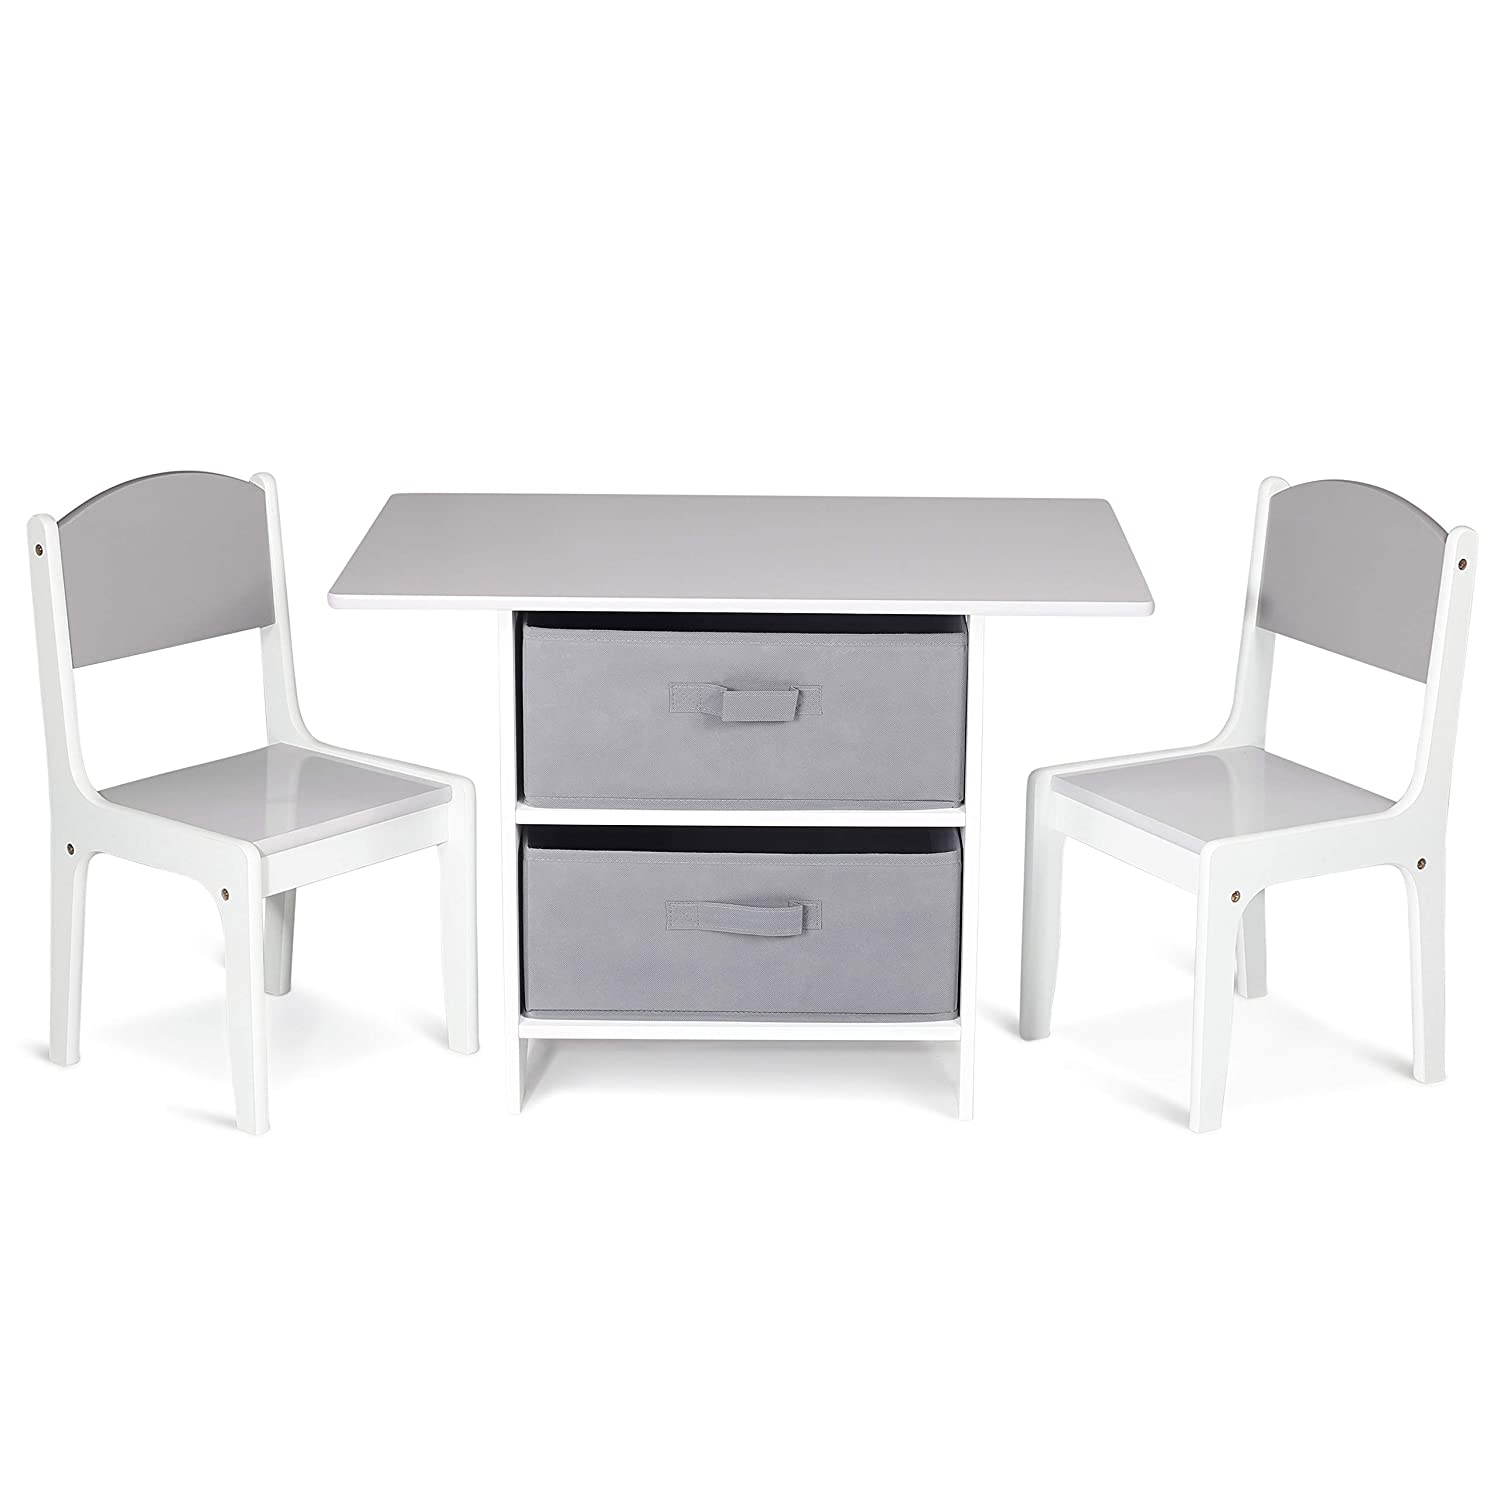 Milliard Kids Table and Chair Set Wood with Storage Shelves, Activity Playset Furniture with Modern Gray Colors